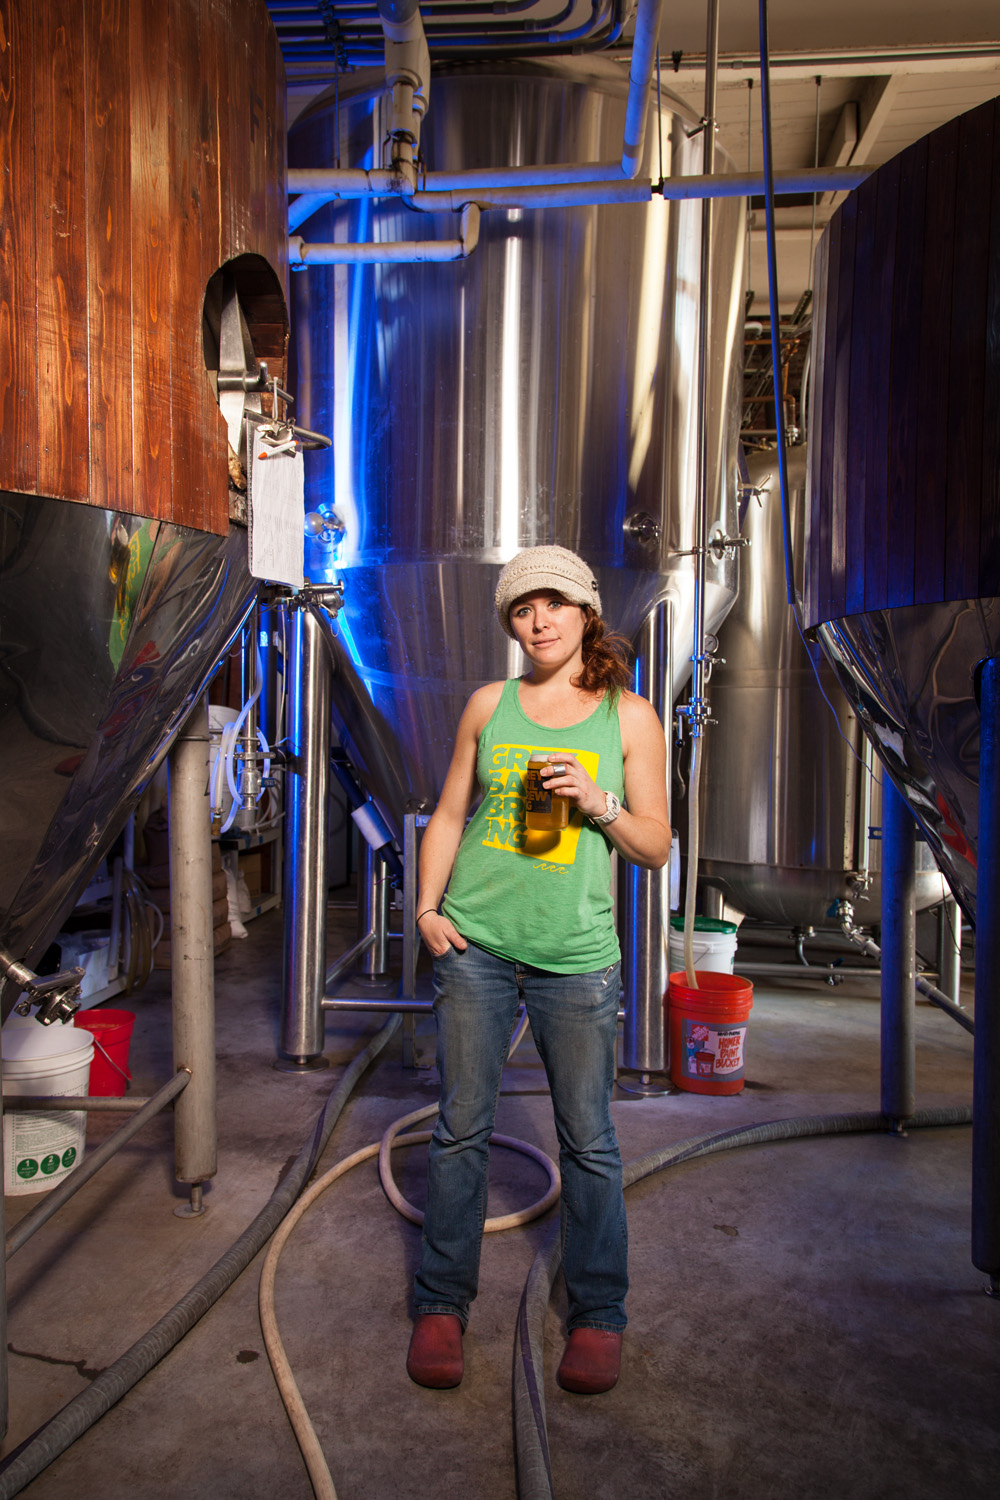 Michelle Kirms, Assistant Brewer at Grey Sail Brewing Co. Westerly, RI Established in 2011